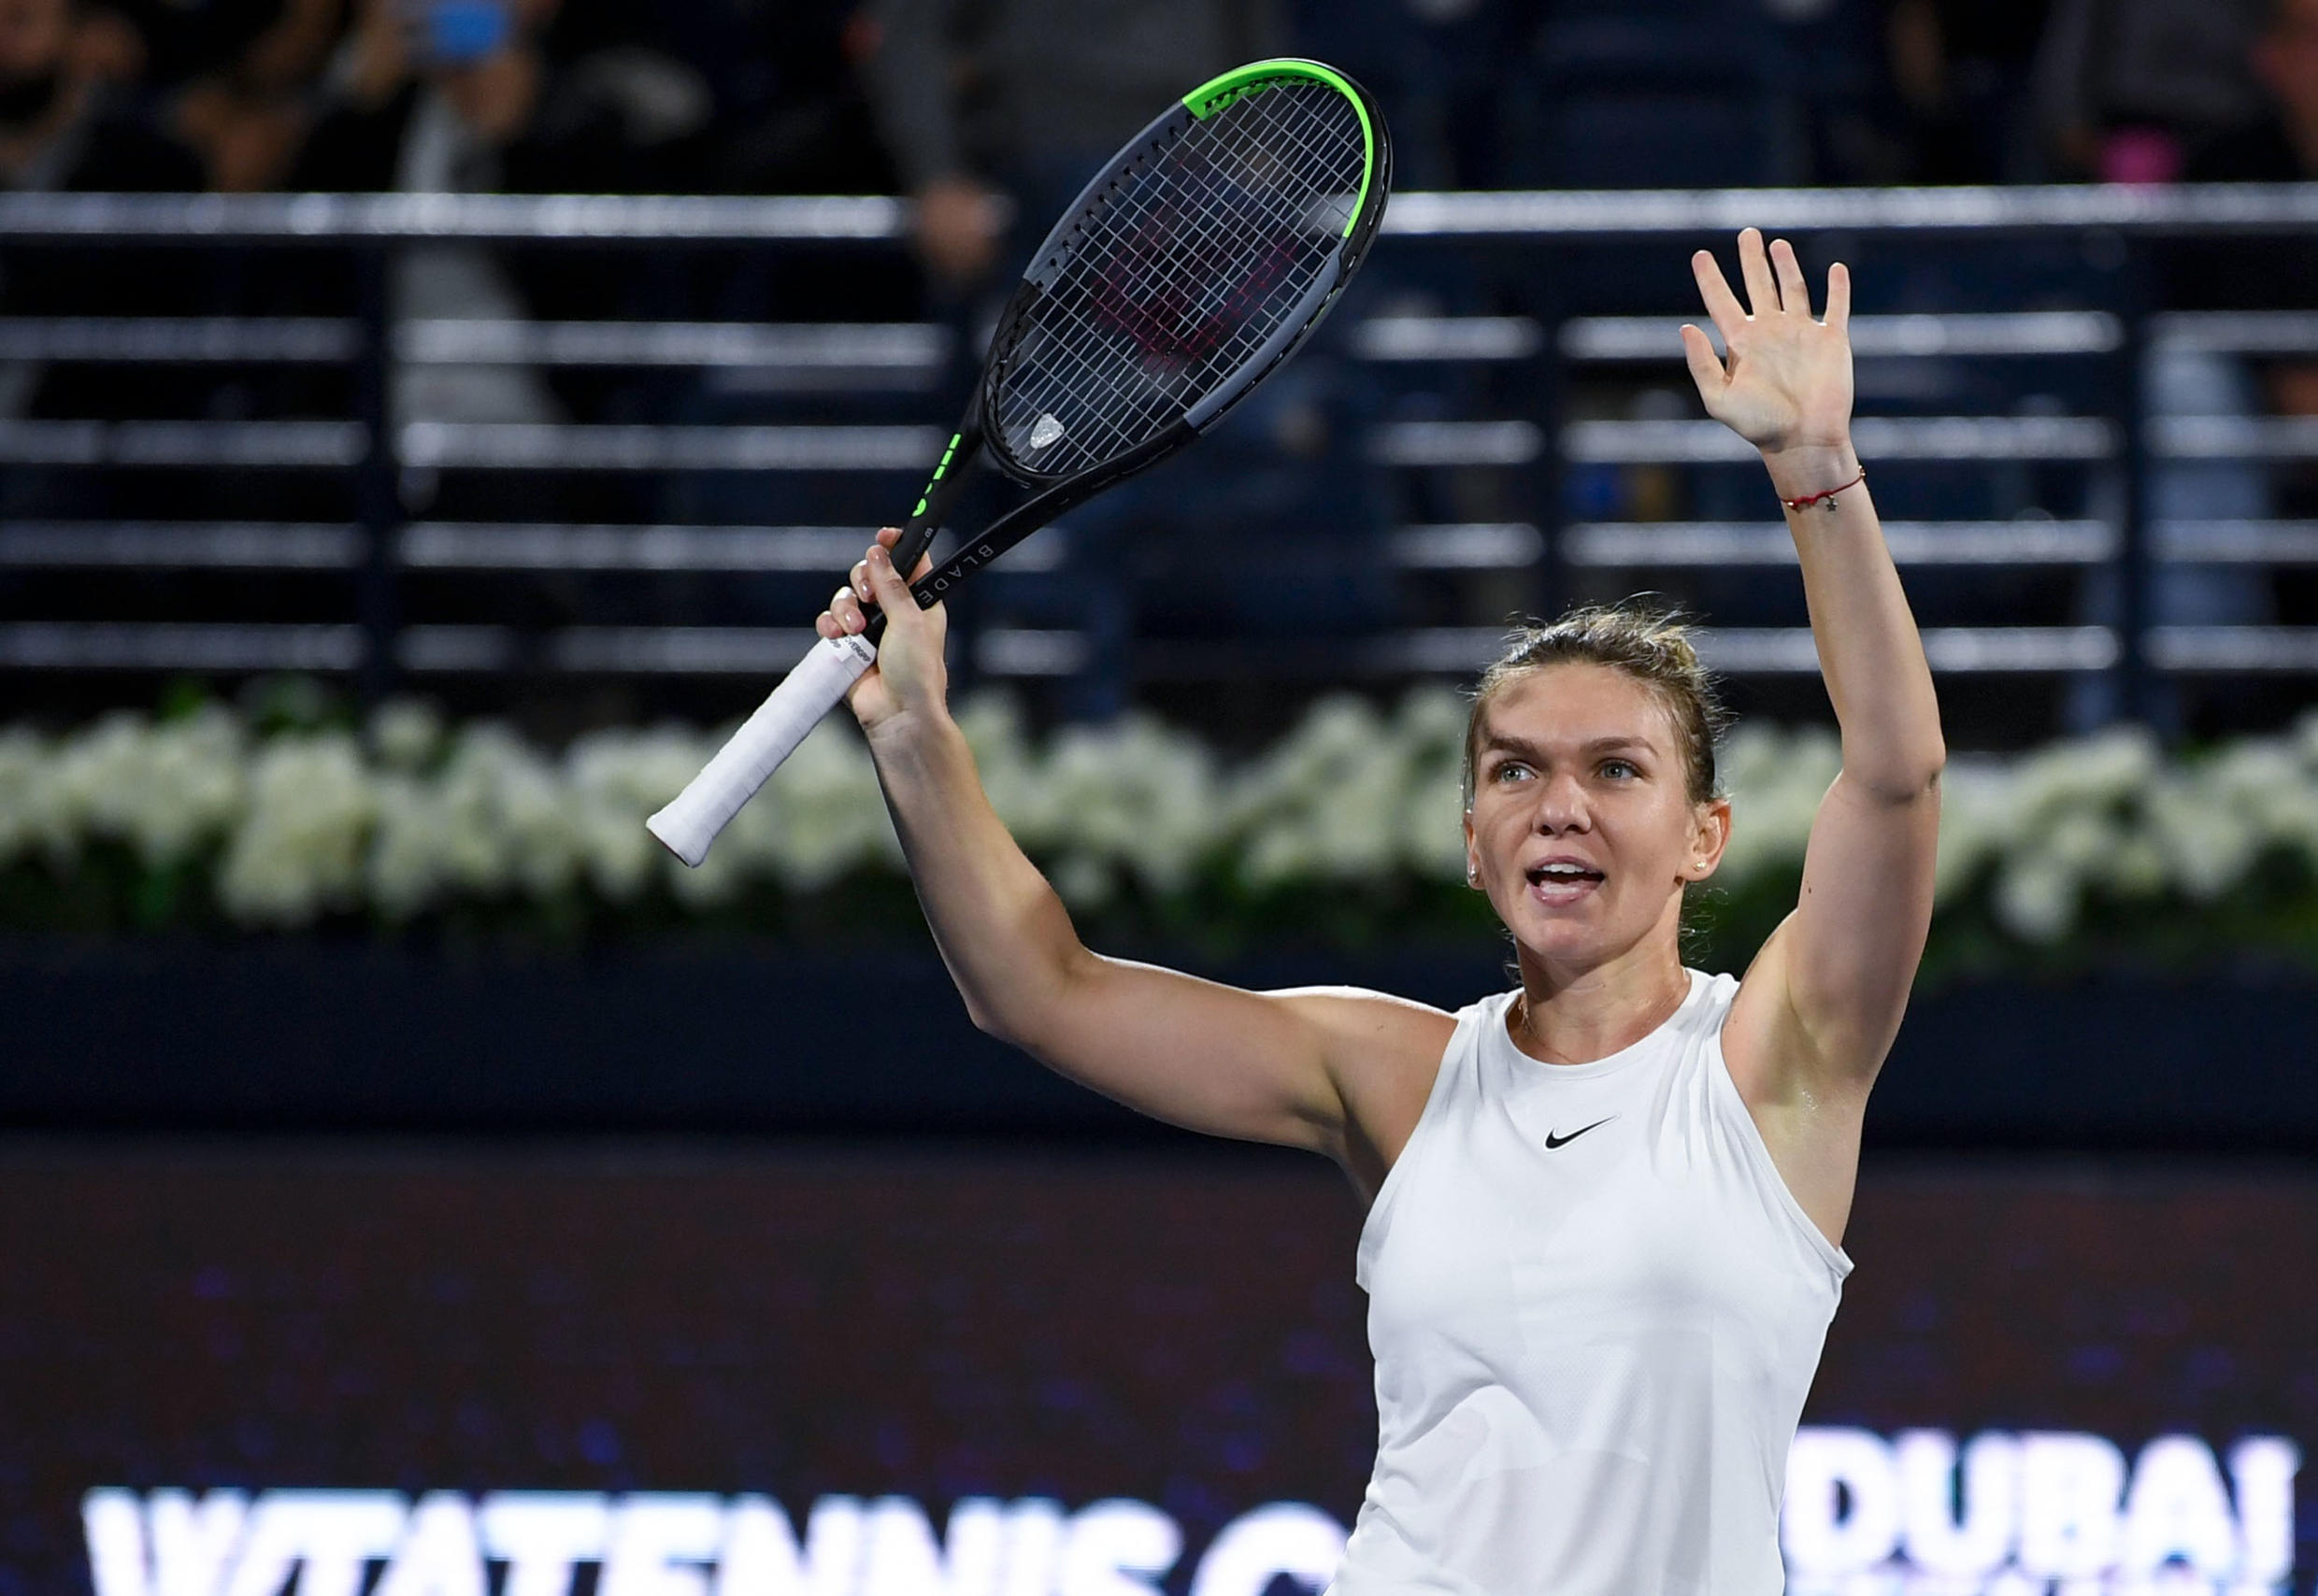 Romanian tennis star Simona Halep says the foot injury that has hampered her since February is improving and she can run without pain